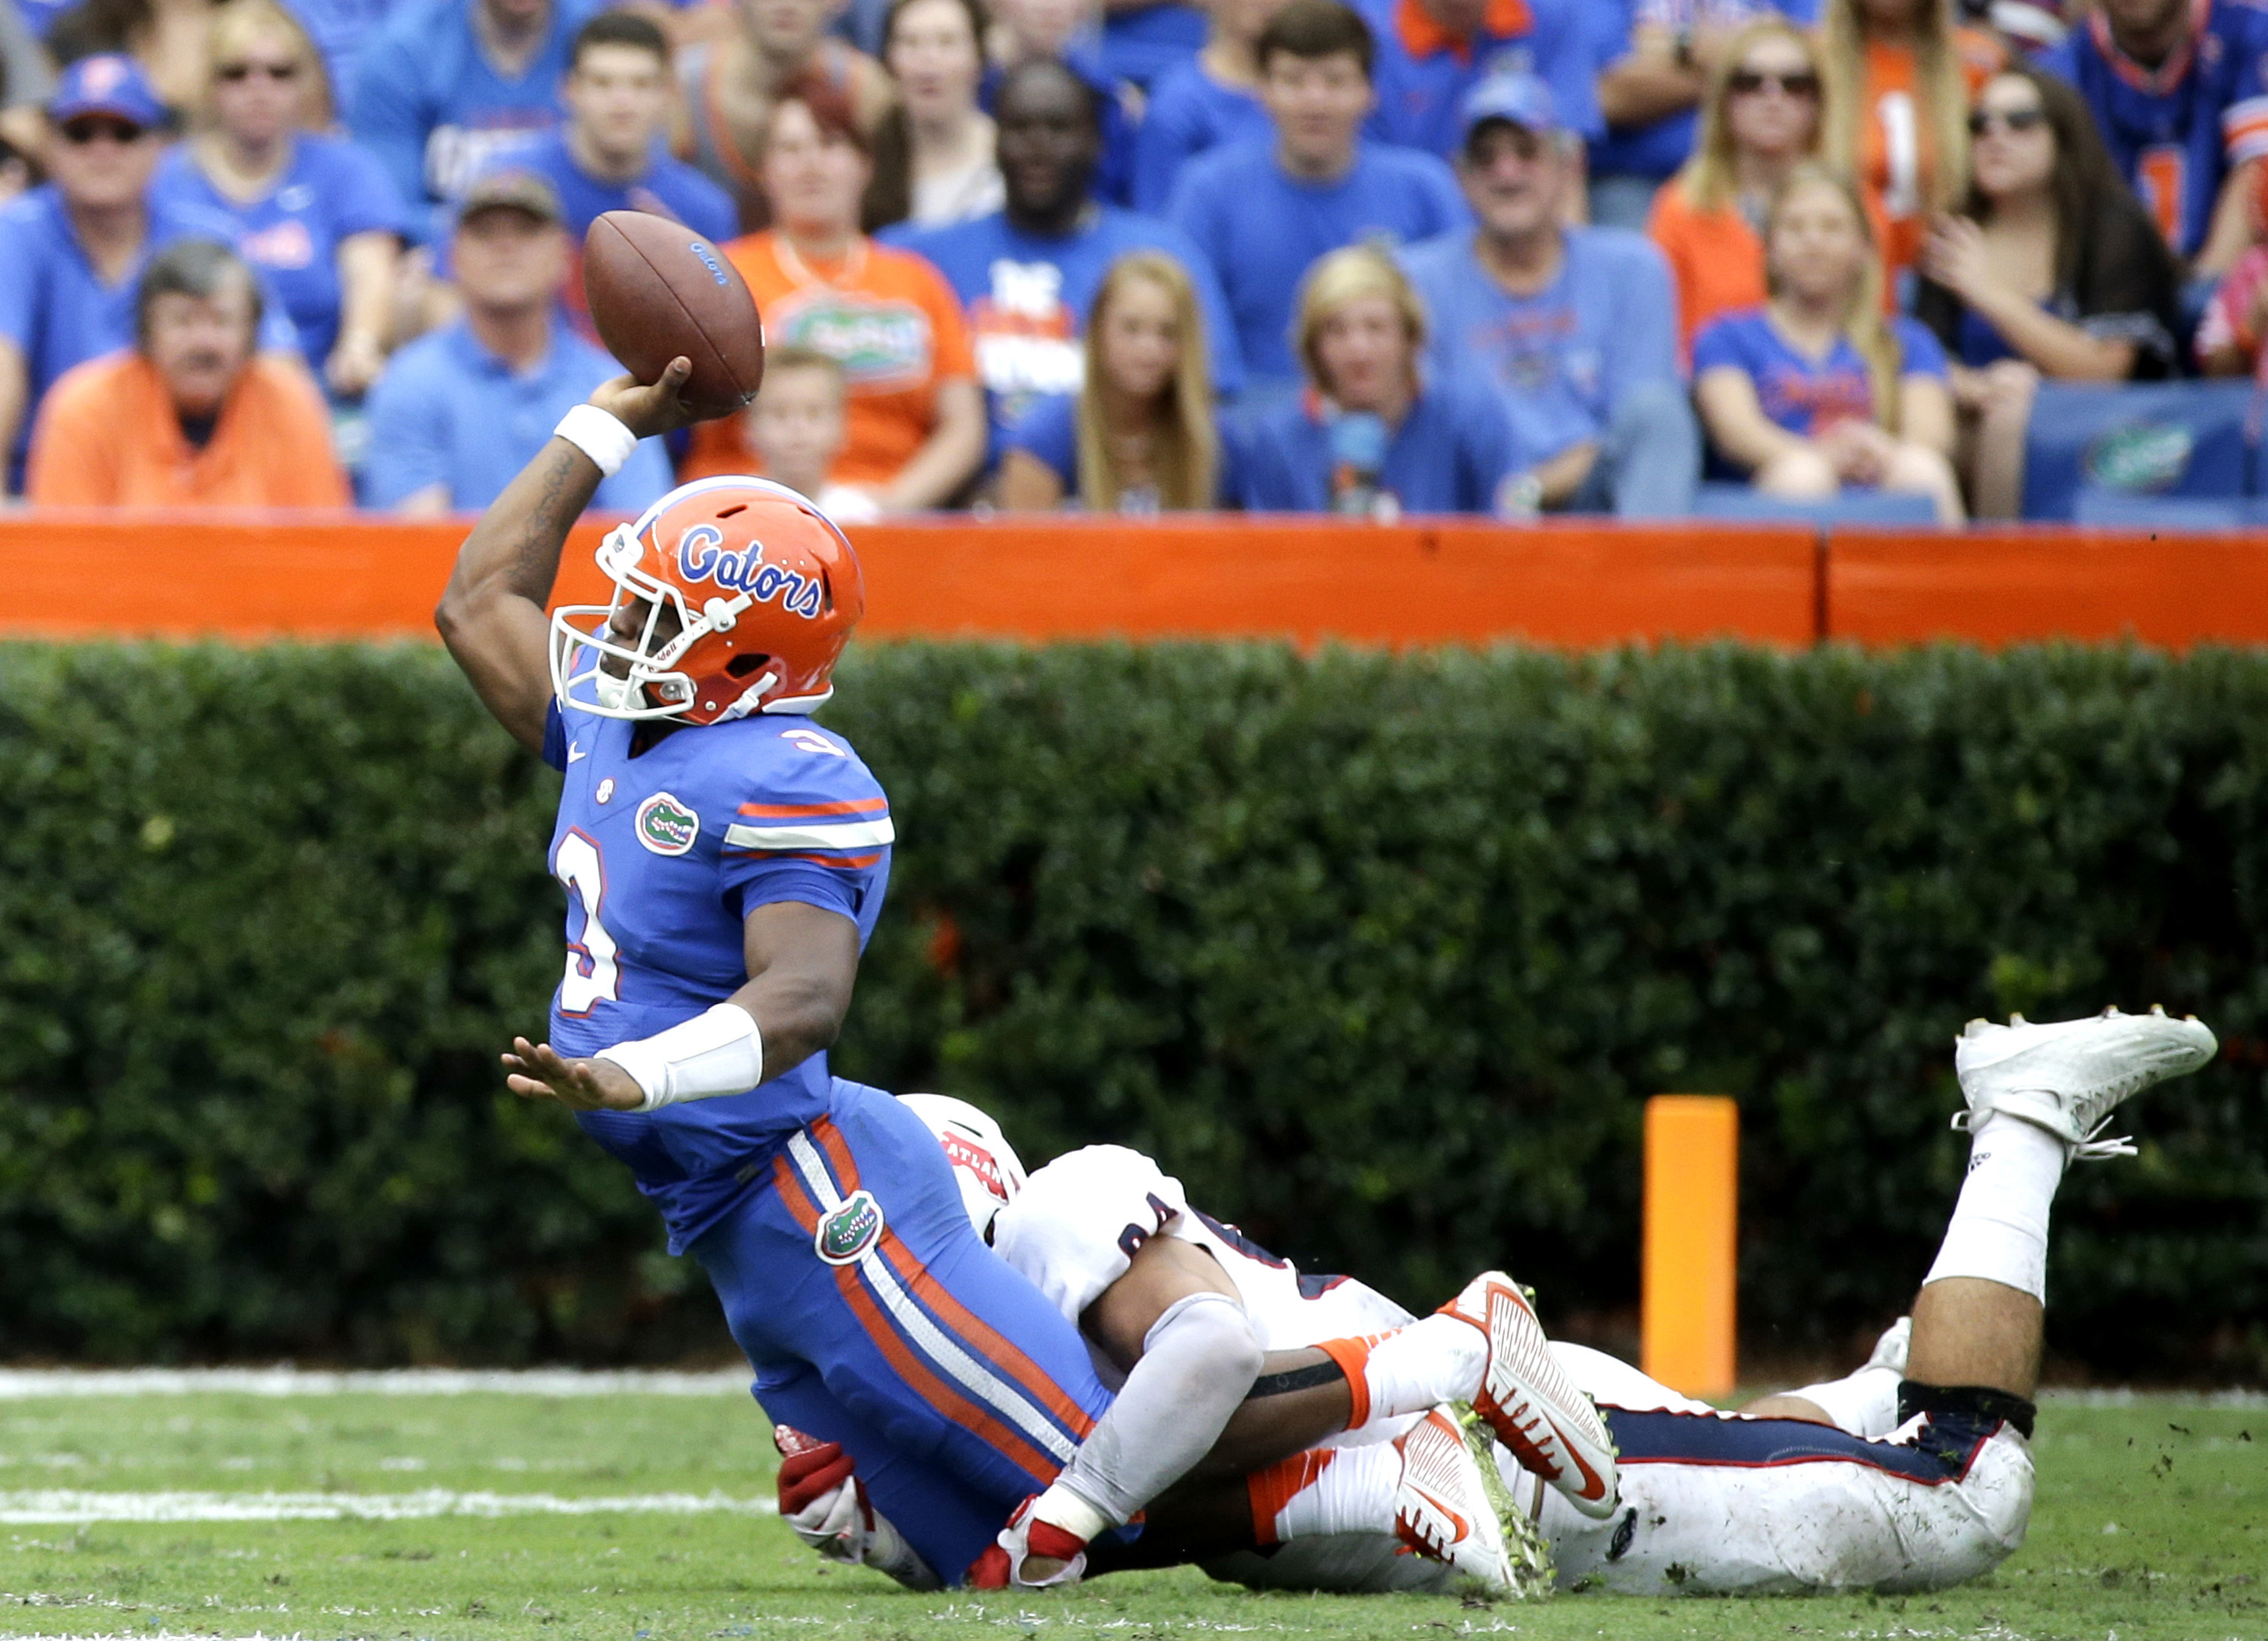 Florida quarterback Treon Harris (3) tires to throws a pass as he is tackled by Florida Atlantic defensive lineman Hunter Snyder, right, during the first half of an NCAA college football game, Saturday, Nov. 21, 2015, in Gainesville, Fla. Harris was ruled